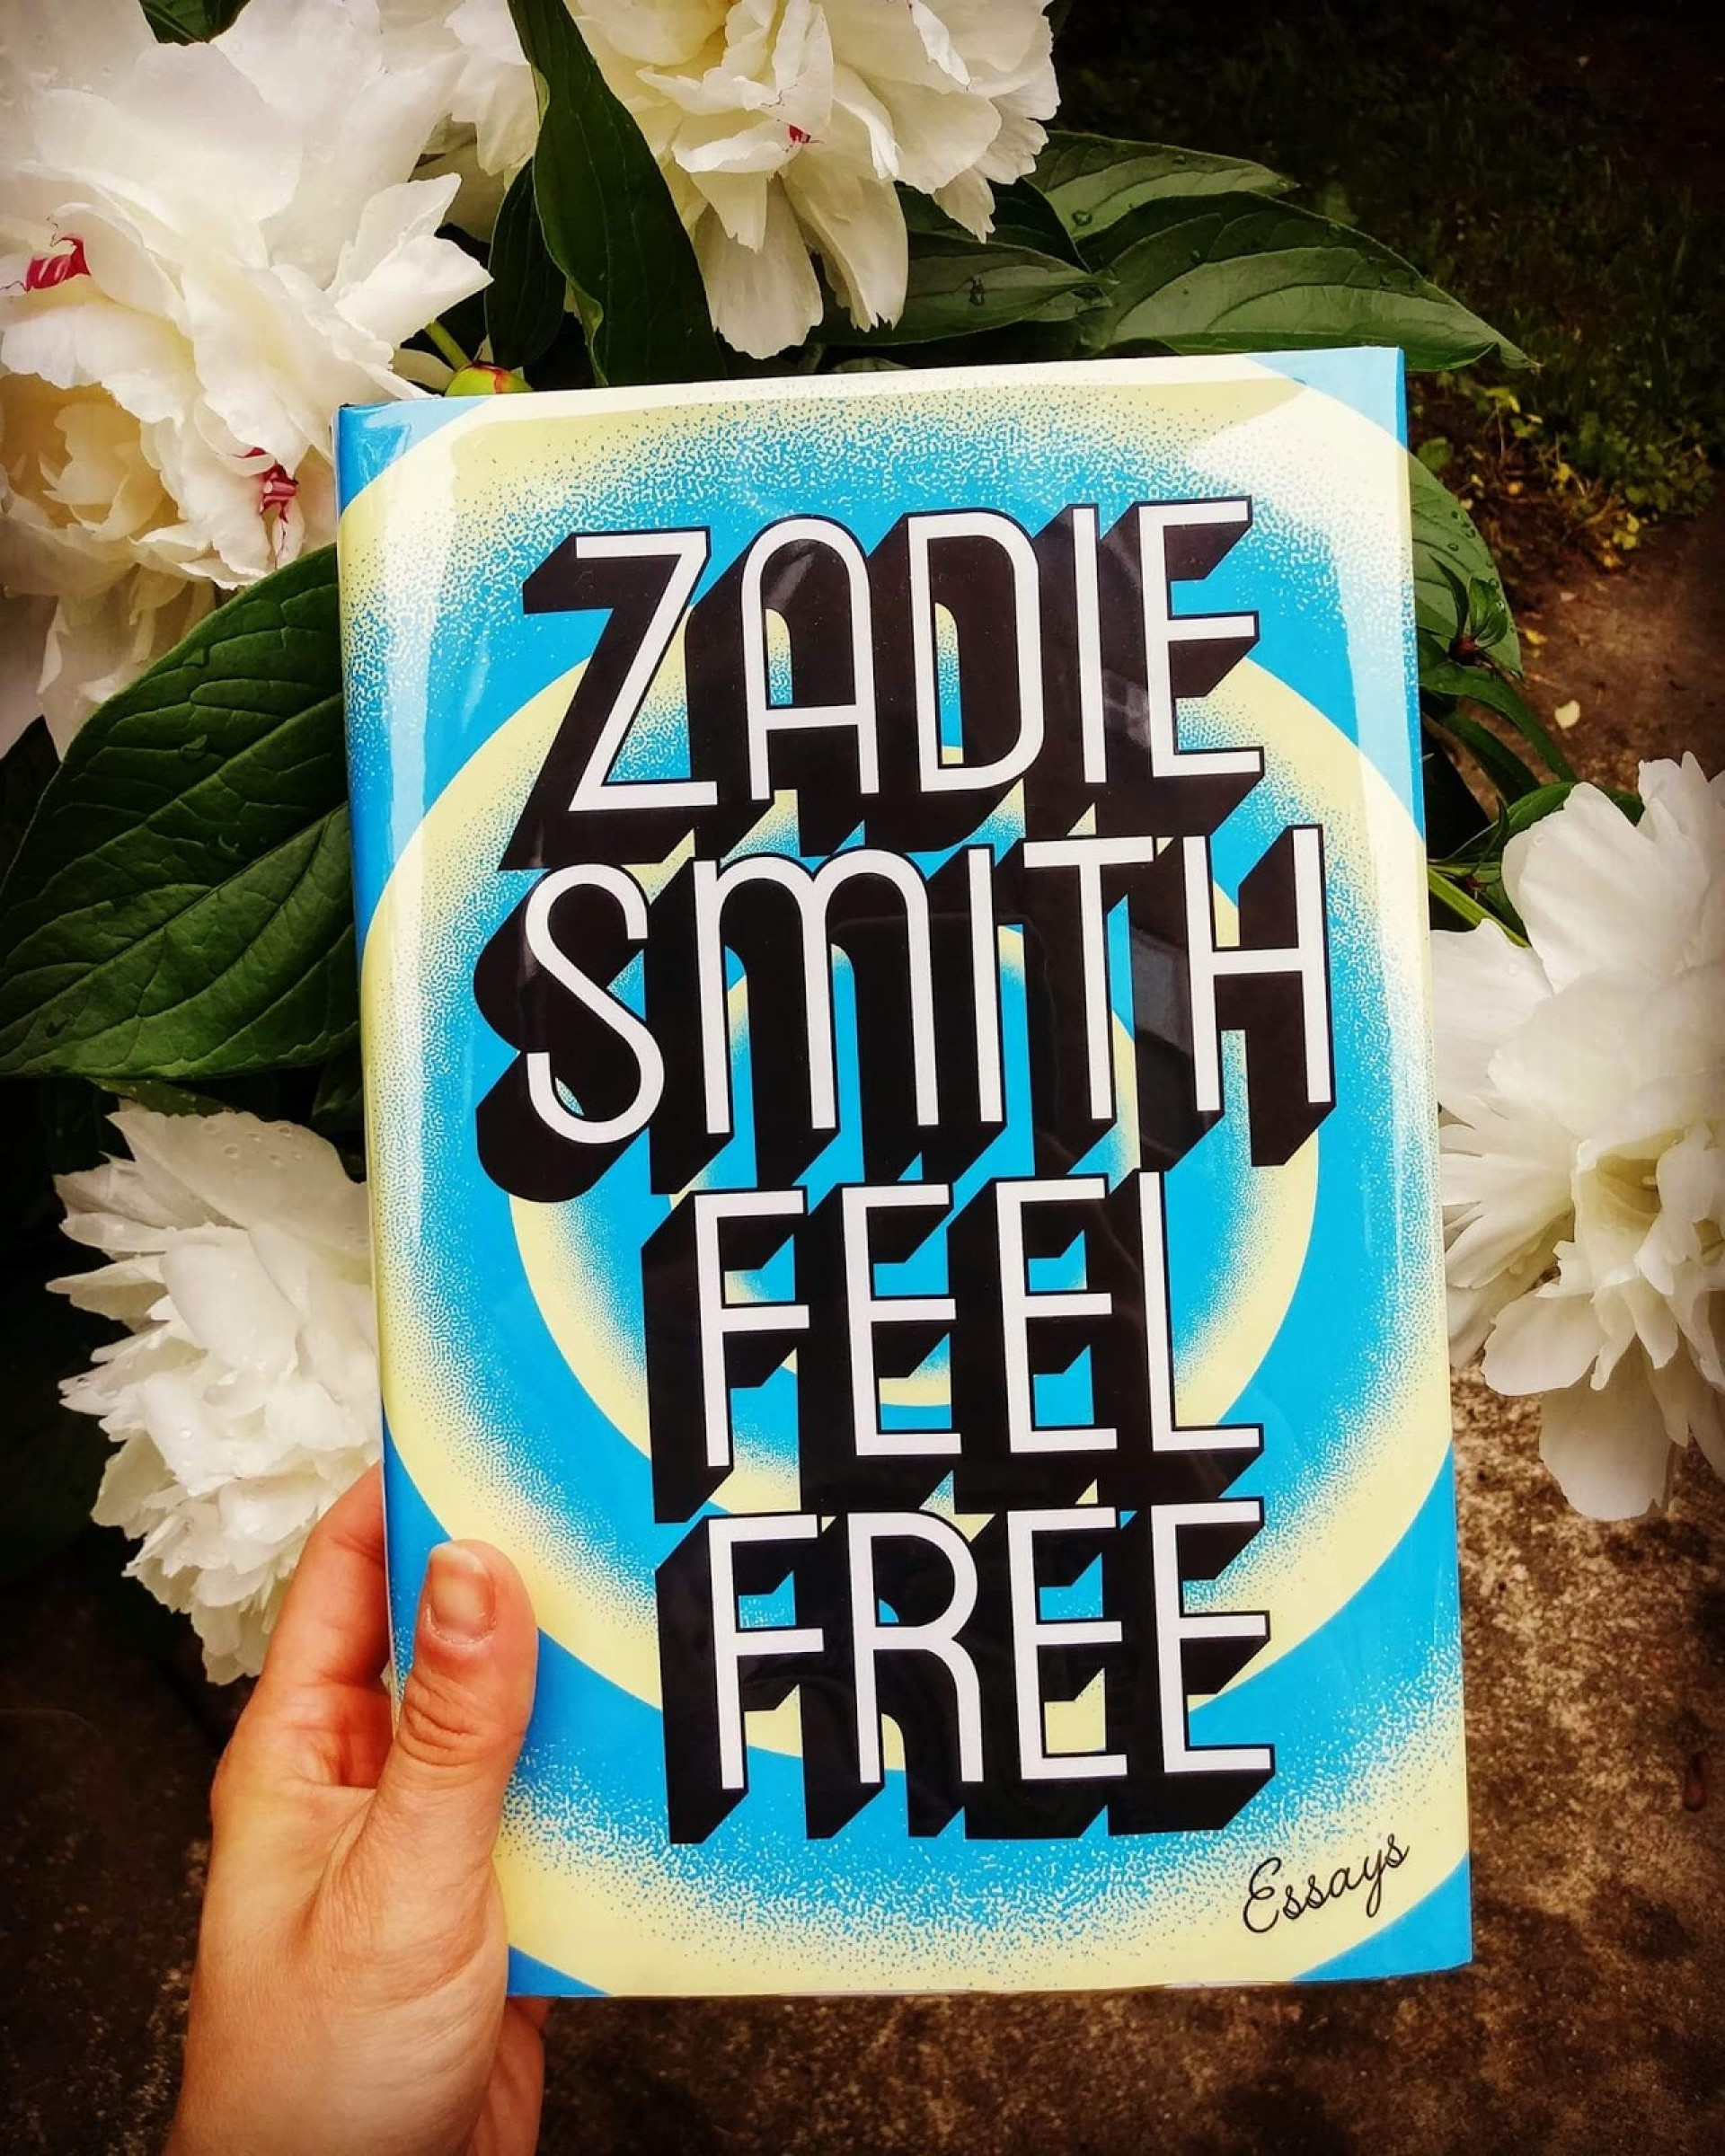 005 33186851 2081800258703093 8881318672442851328 O Zadie Smith Essays Essay Wonderful Amazon Radio 4 1920